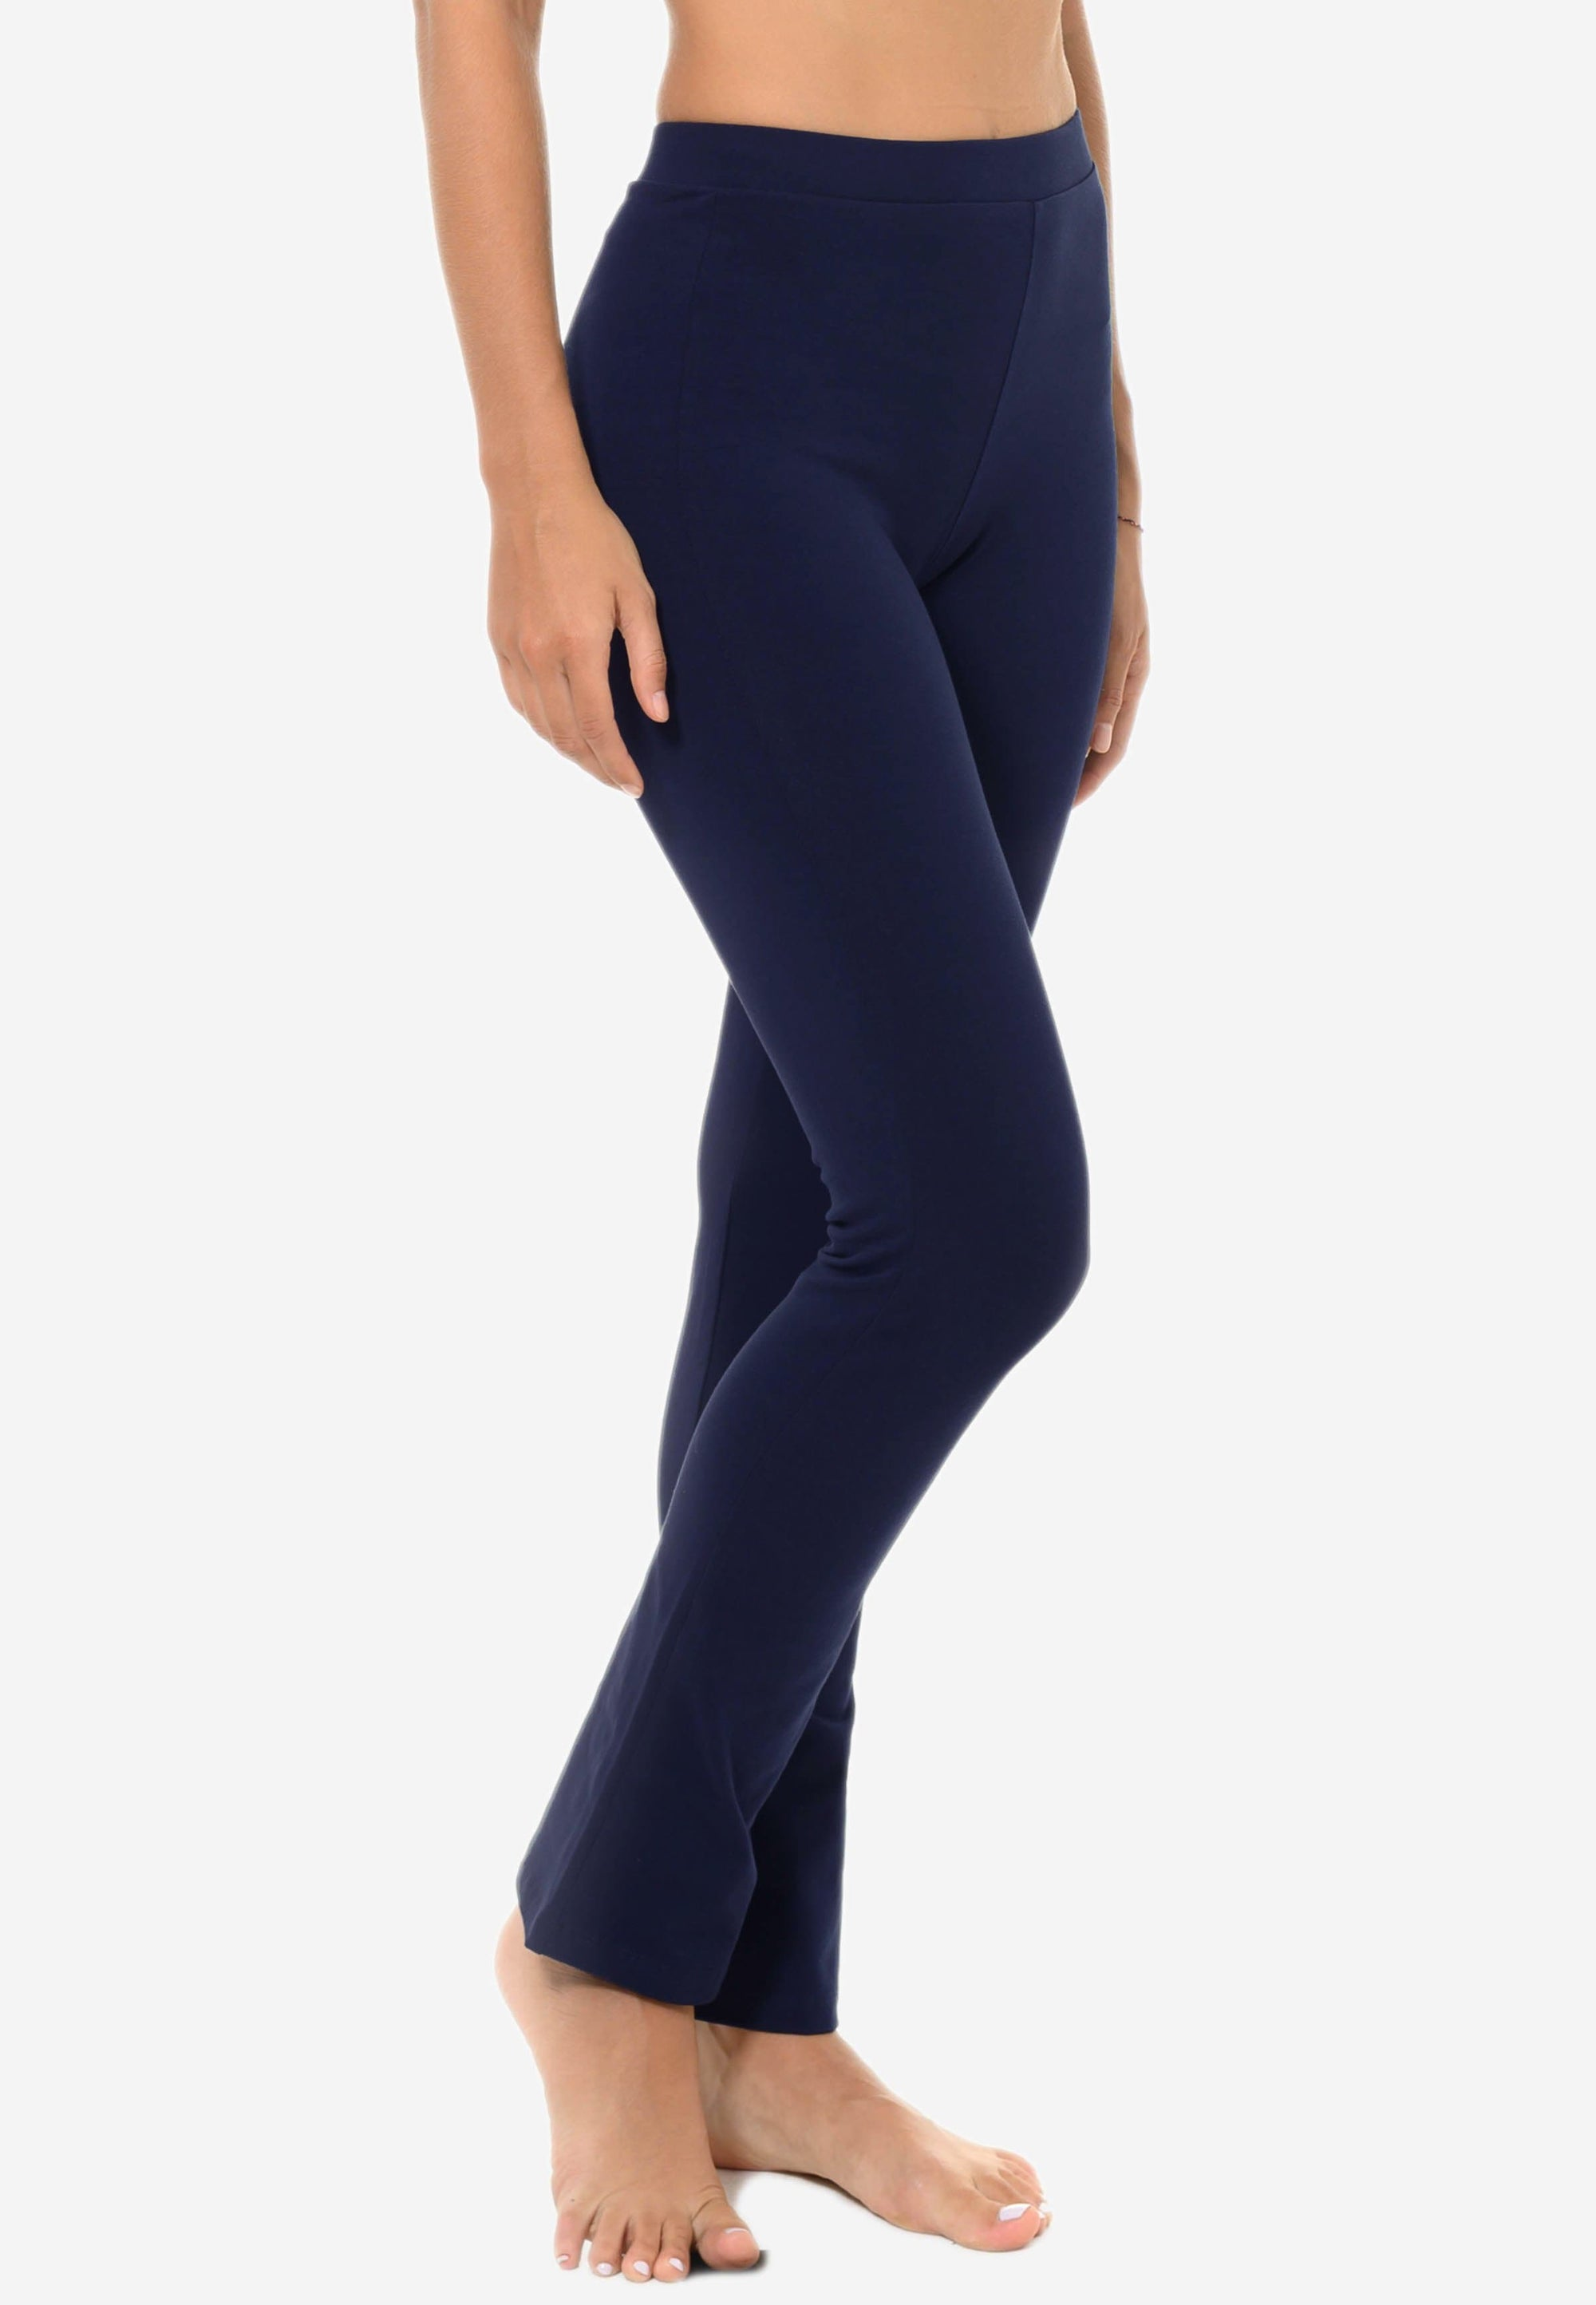 FUNFIT Basic Straight-Cut Flare Leggings in Navy (S - 3XL)